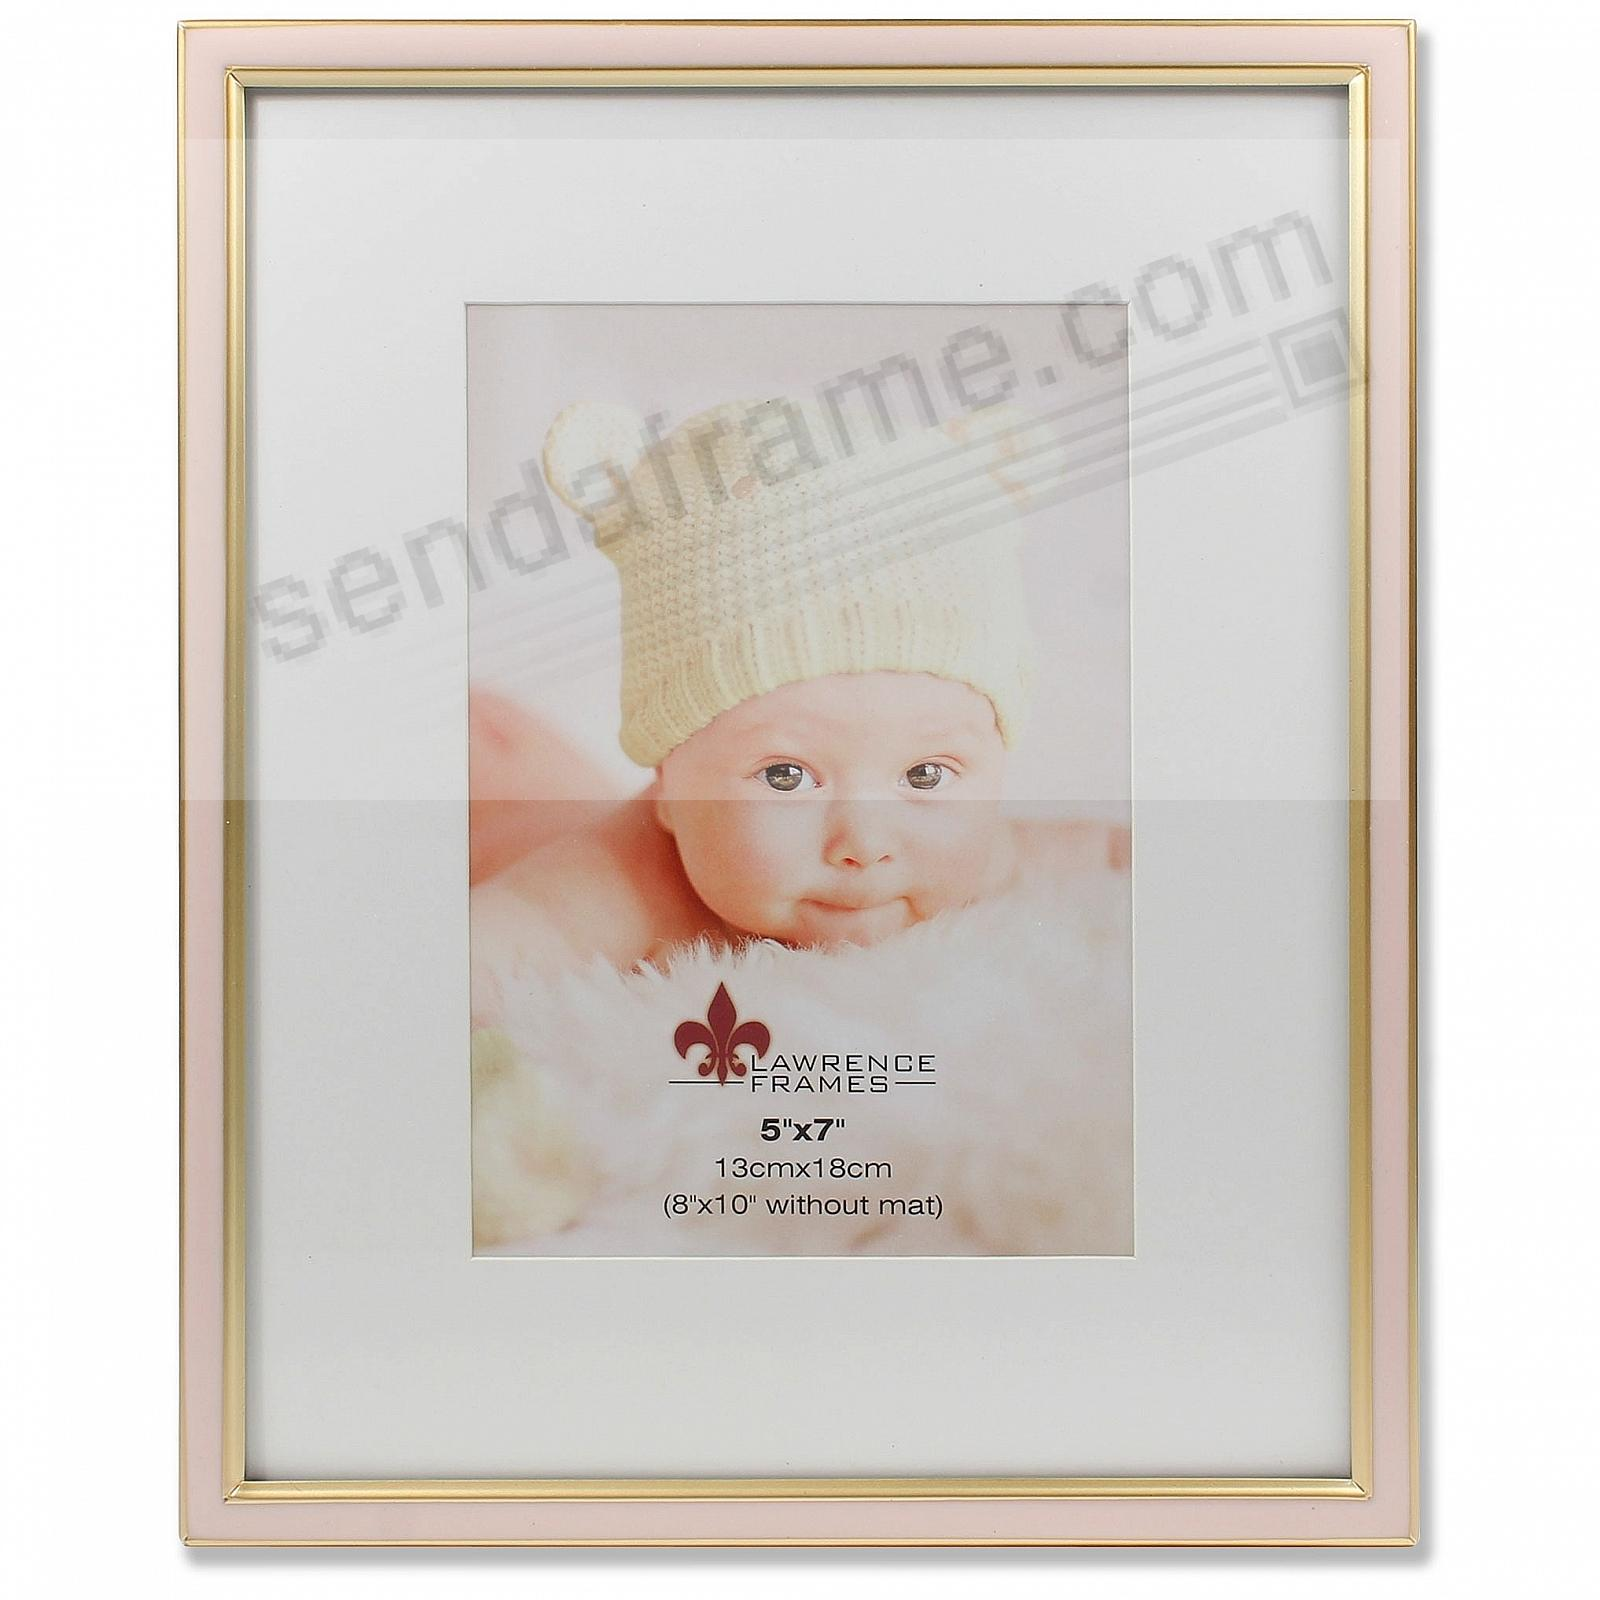 Matted Pink Enamel 8x10/5x7 Frame by Lawrence® - Picture Frames ...